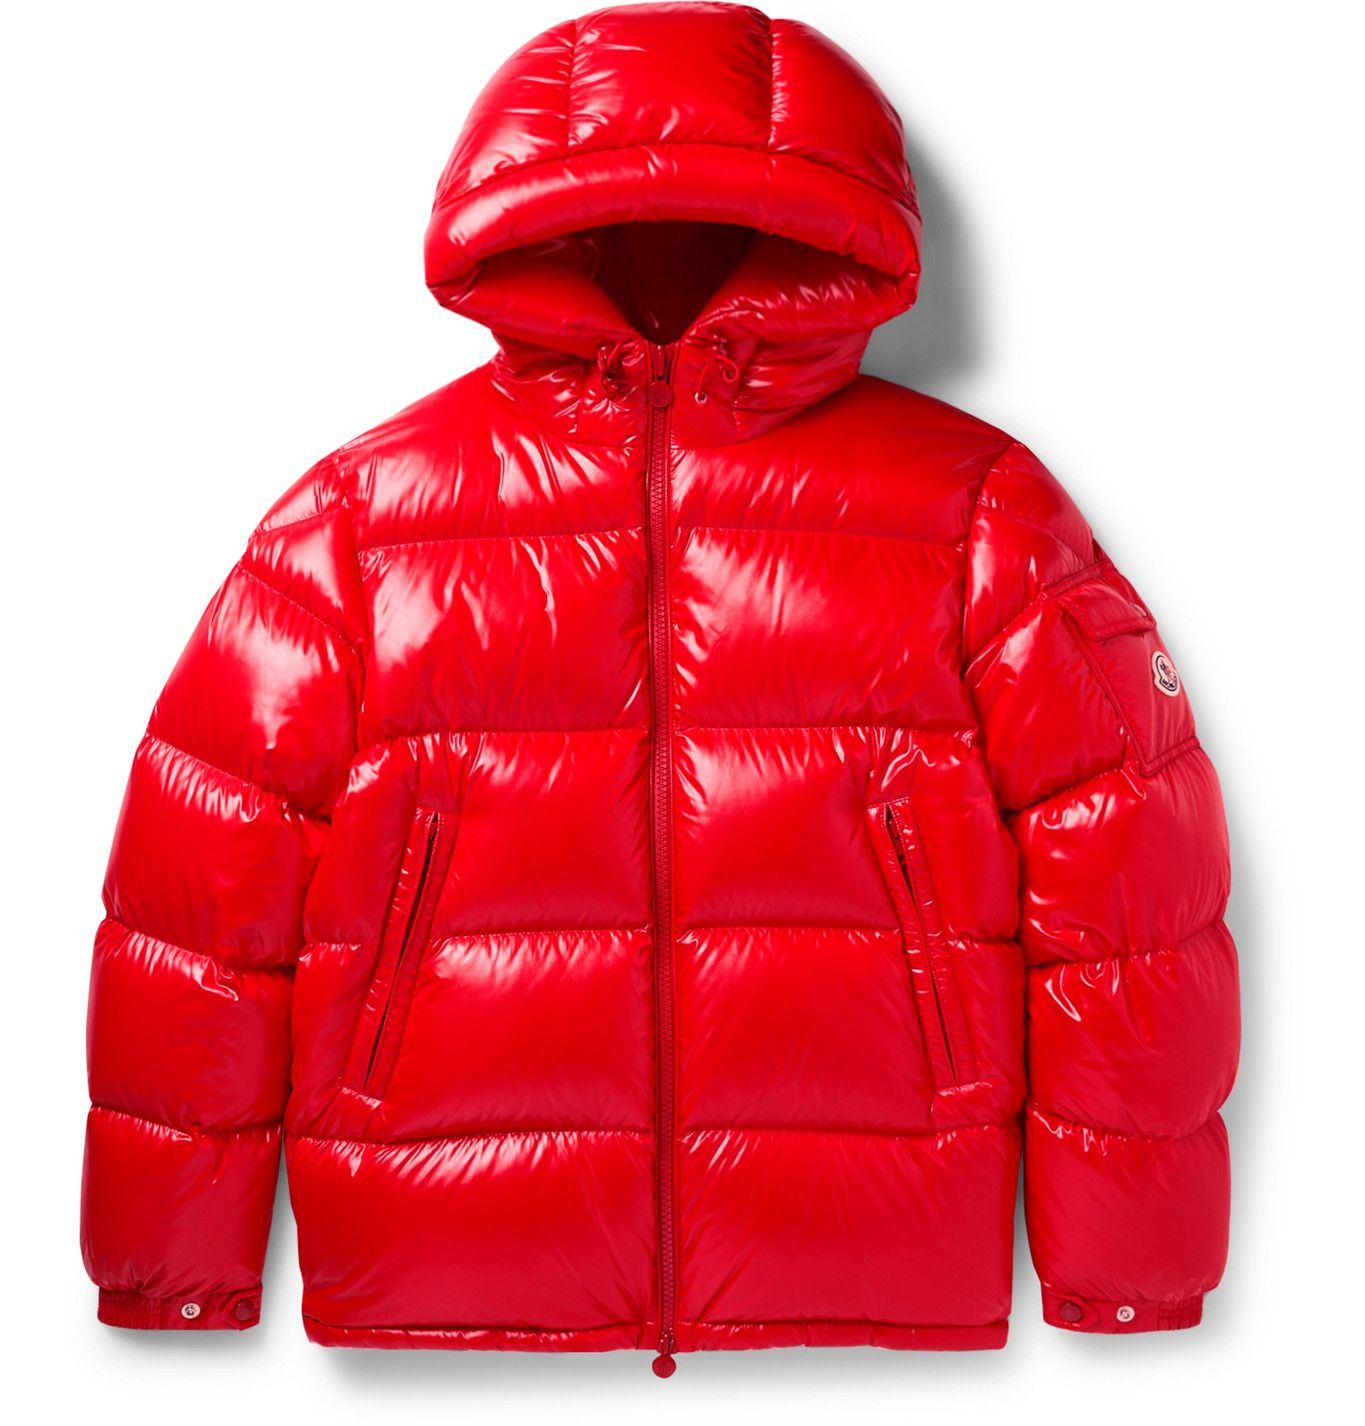 Ecrins Hooded Quilted Shell Down Jacket In 2021 Moncler Red Puffer Jacket Jackets [ 1426 x 1365 Pixel ]